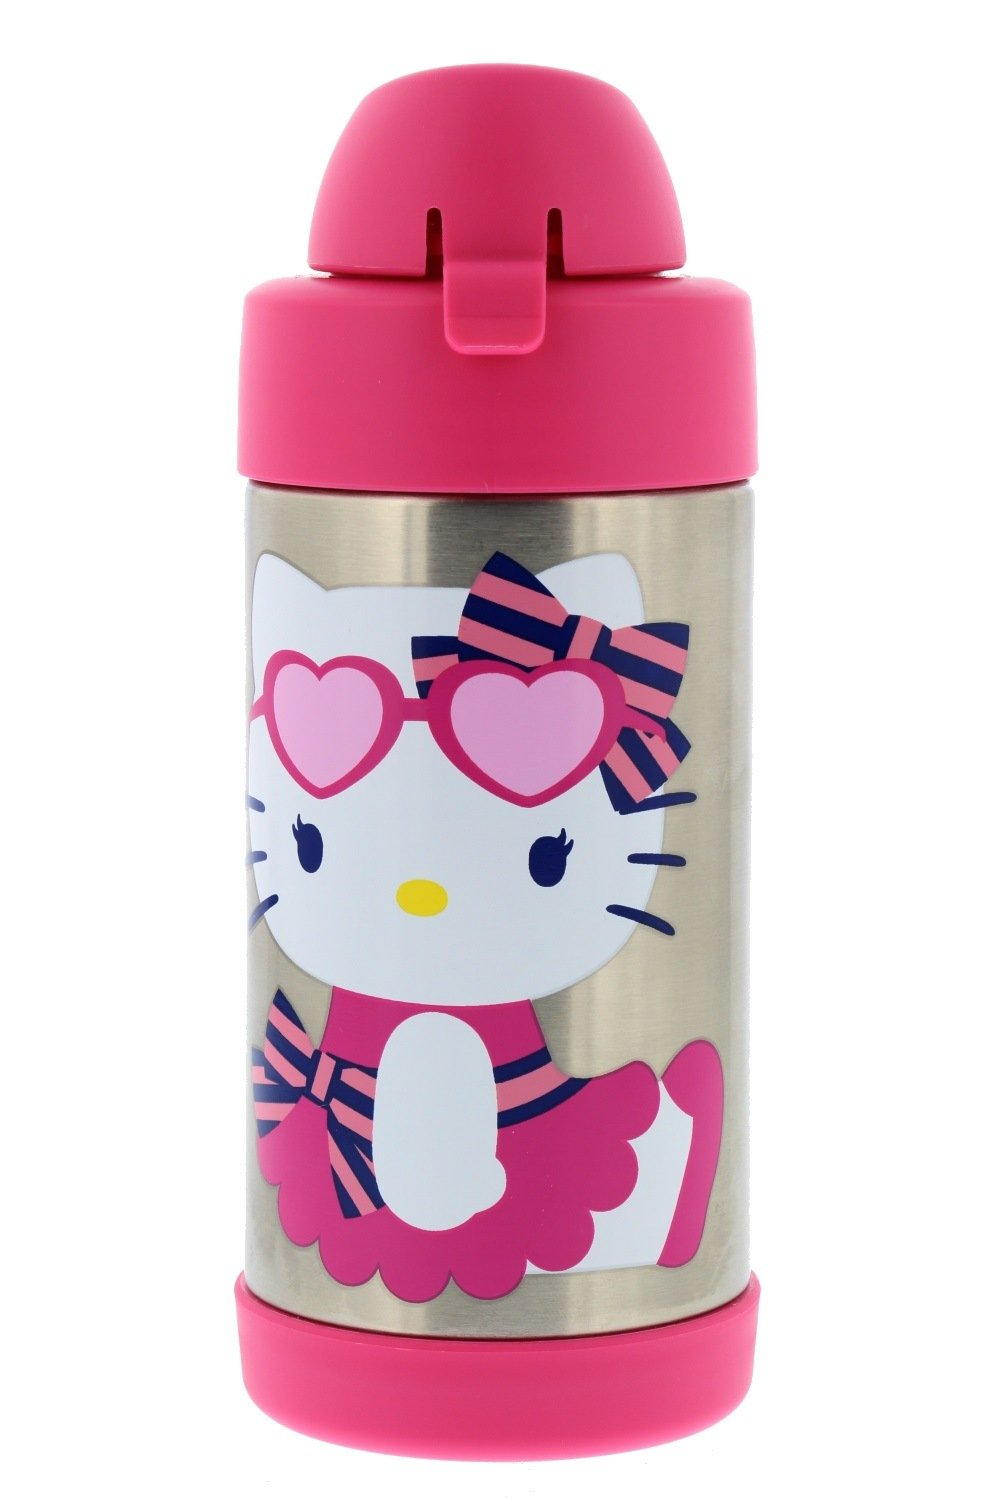 Thermos FUNtainer Vacuum Insulated Stainless Steel Kids Drinkware Bottle with Straw, 10oz - Tasteless and Odorless, BPA Free, Portable & Great for Children, Travel & Lunchboxes – Hello Kitty Cupcake